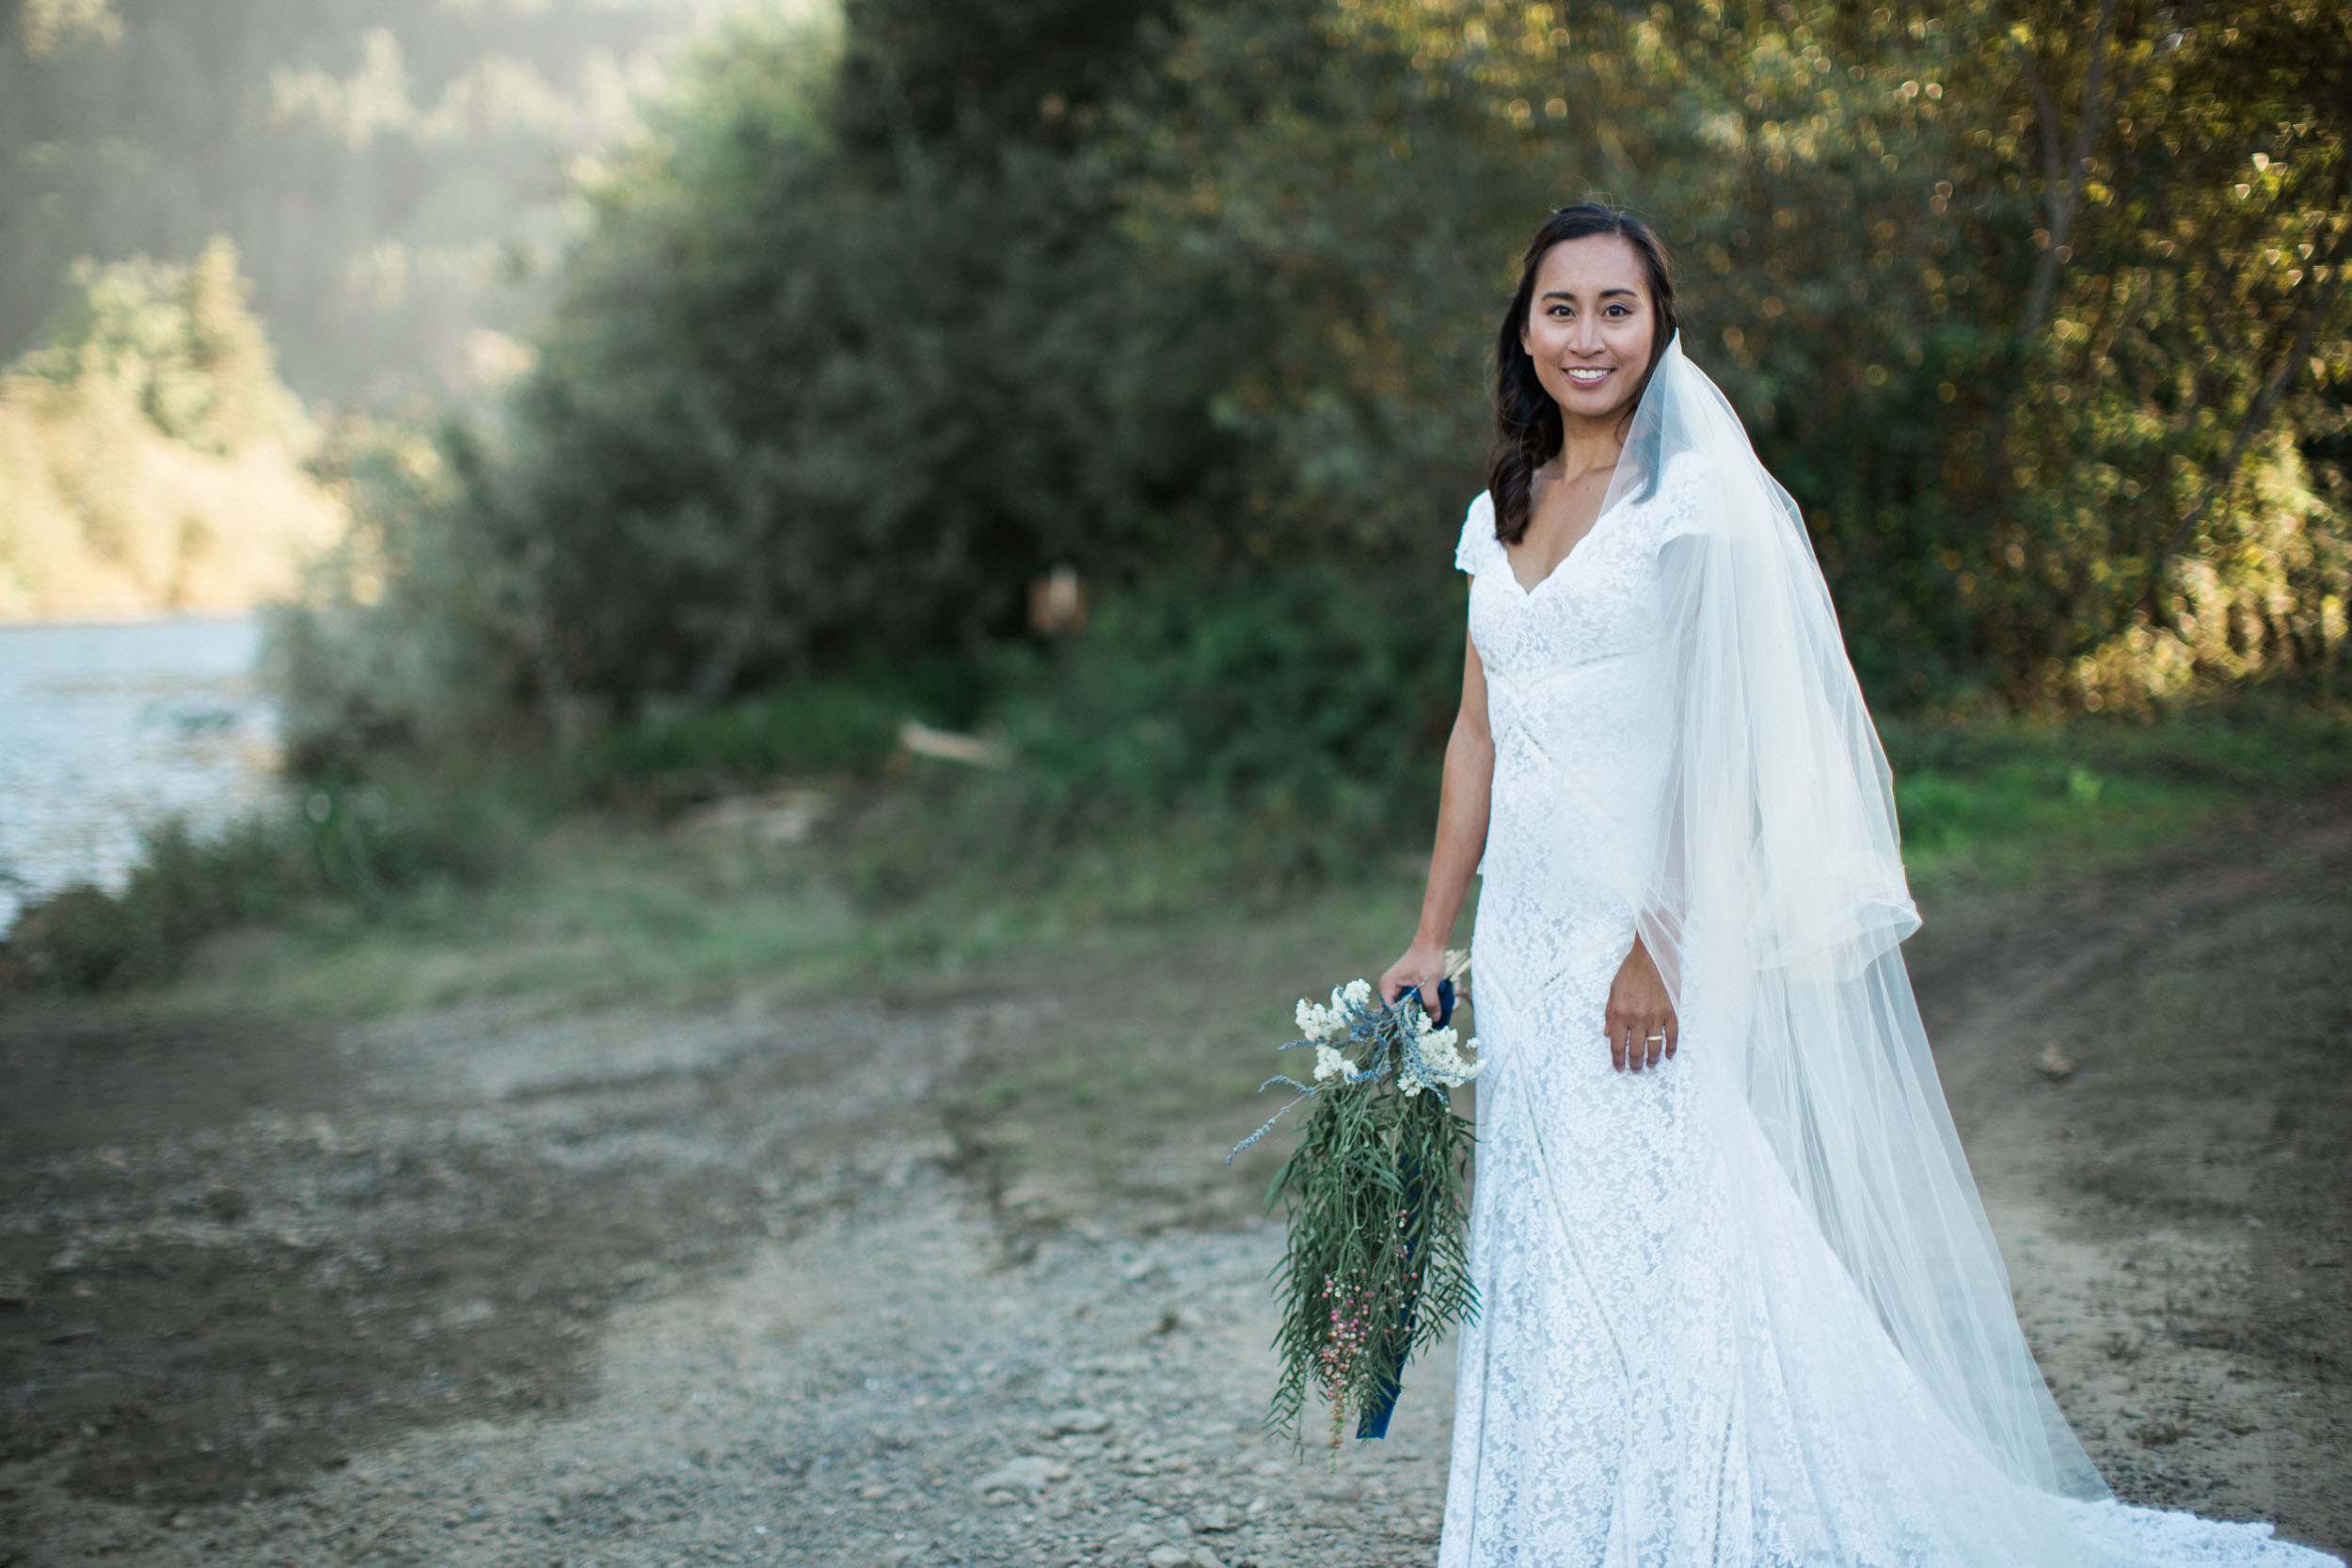 BKM-Photography-Russian-River-Wedding-Redwoods-Guerneville-California-Destination-Wedding-Photographer-0097.jpg